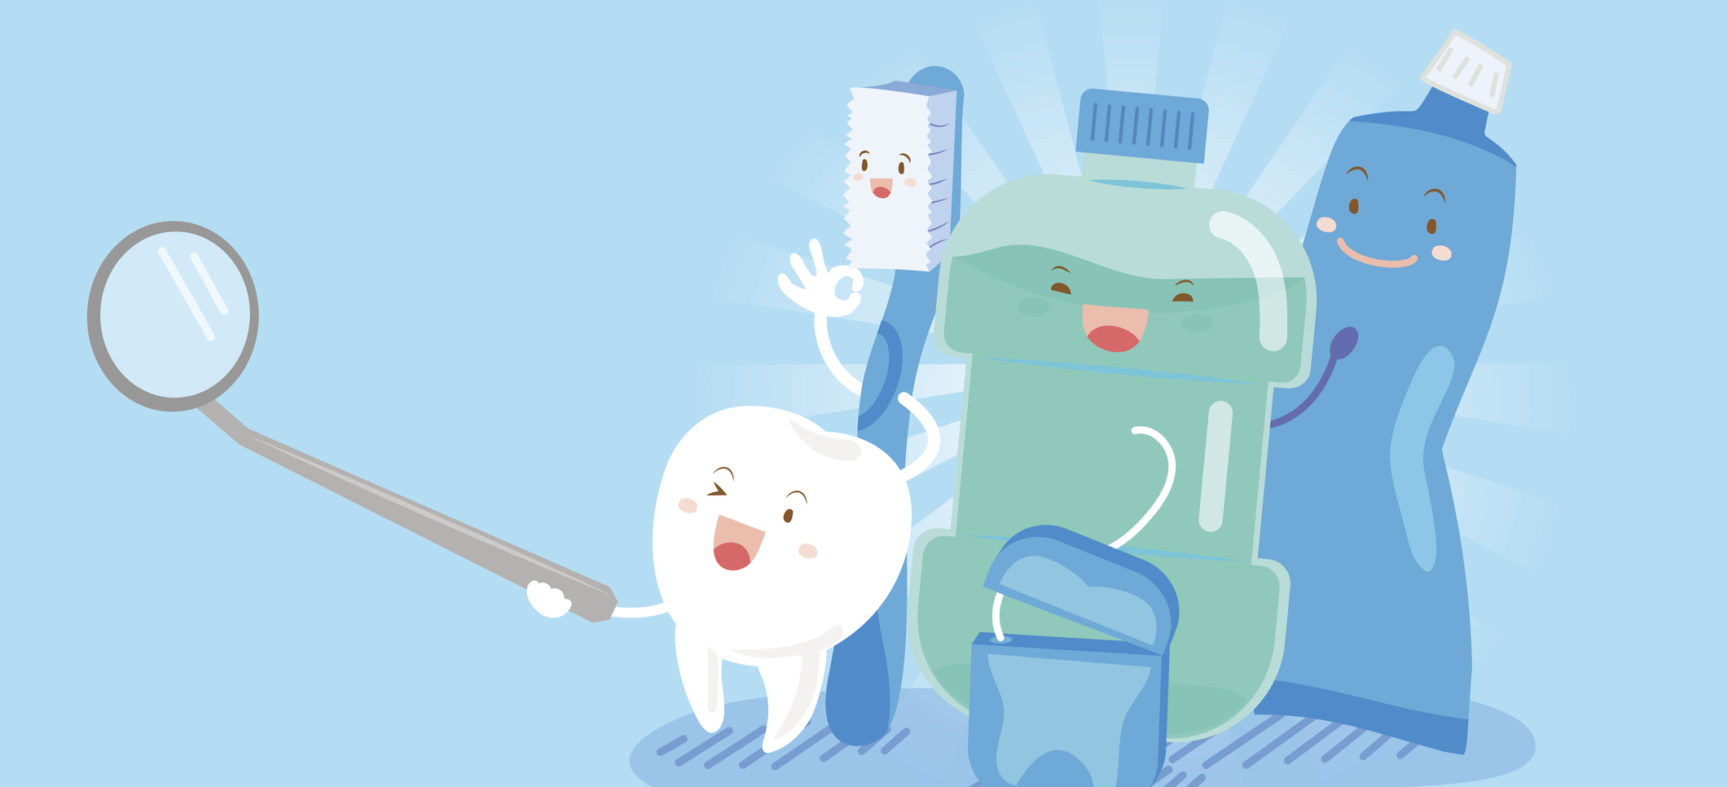 Happy Dental Hygiene Month